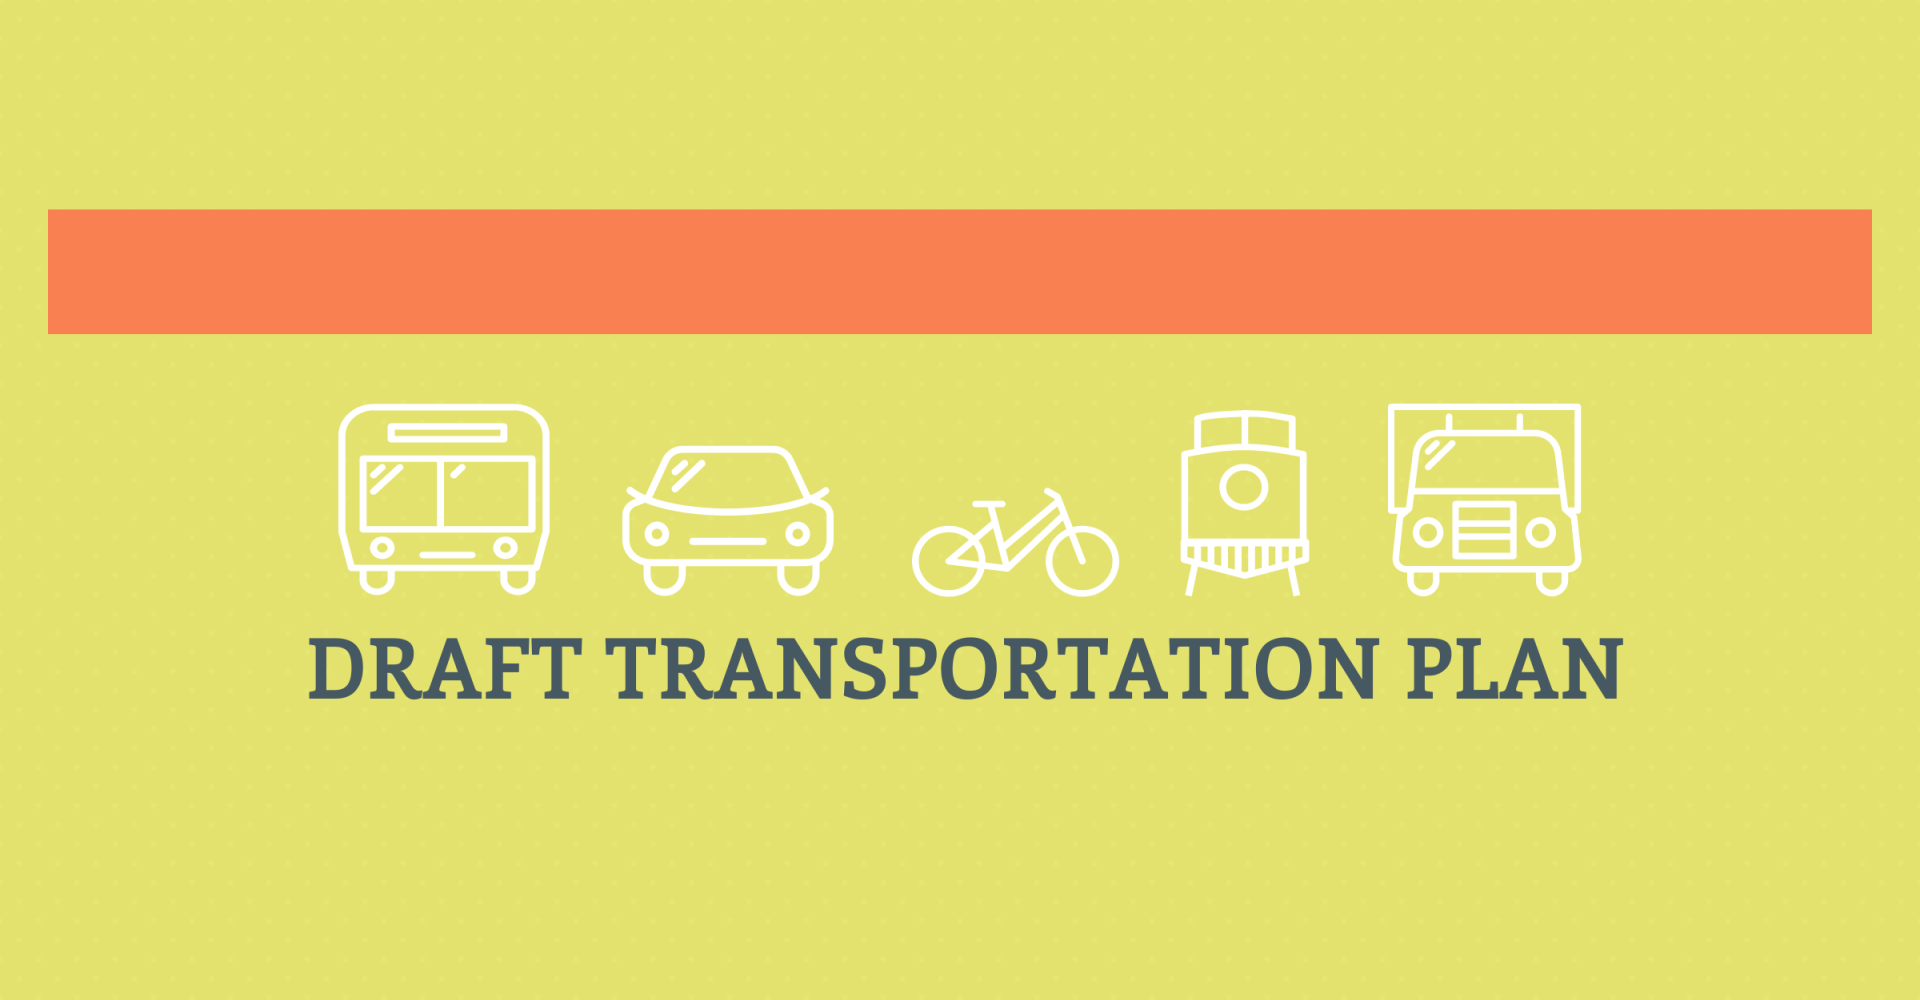 Draft Transportation Plan